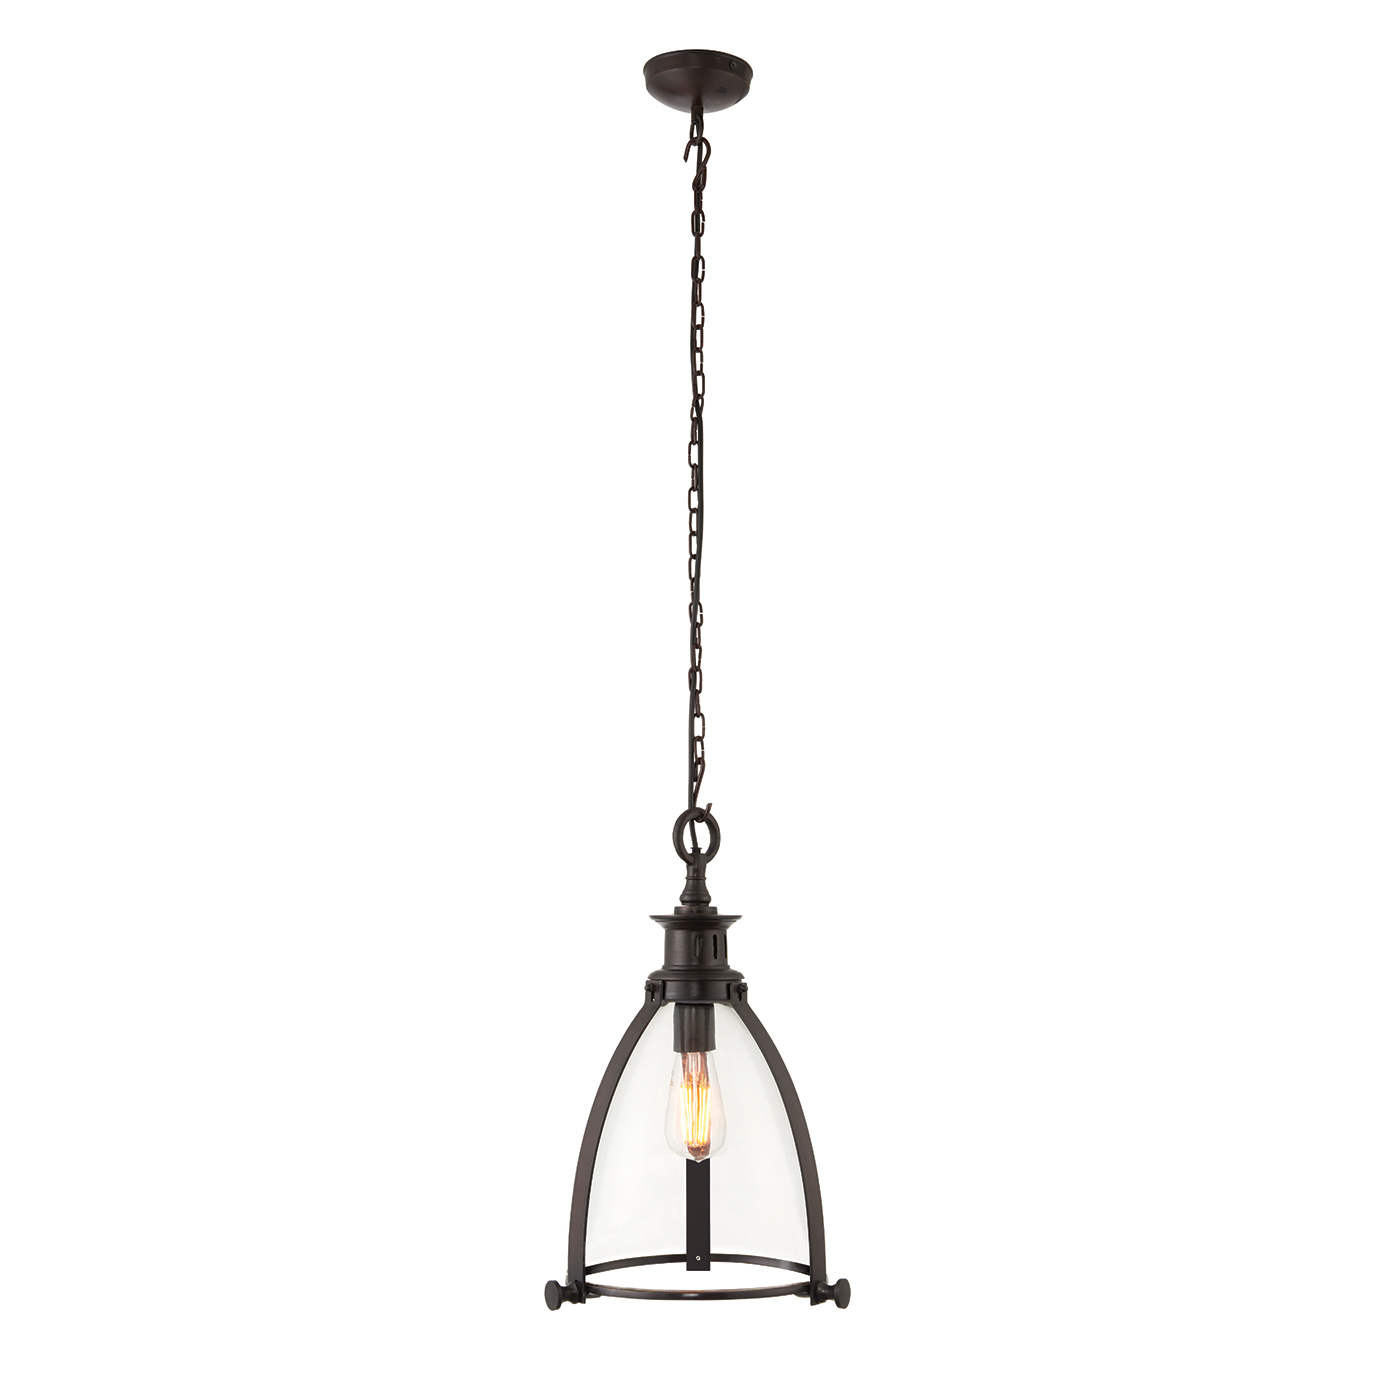 Endon Storni 285mm pendant 40W Aged bronze effect plate & clear glass